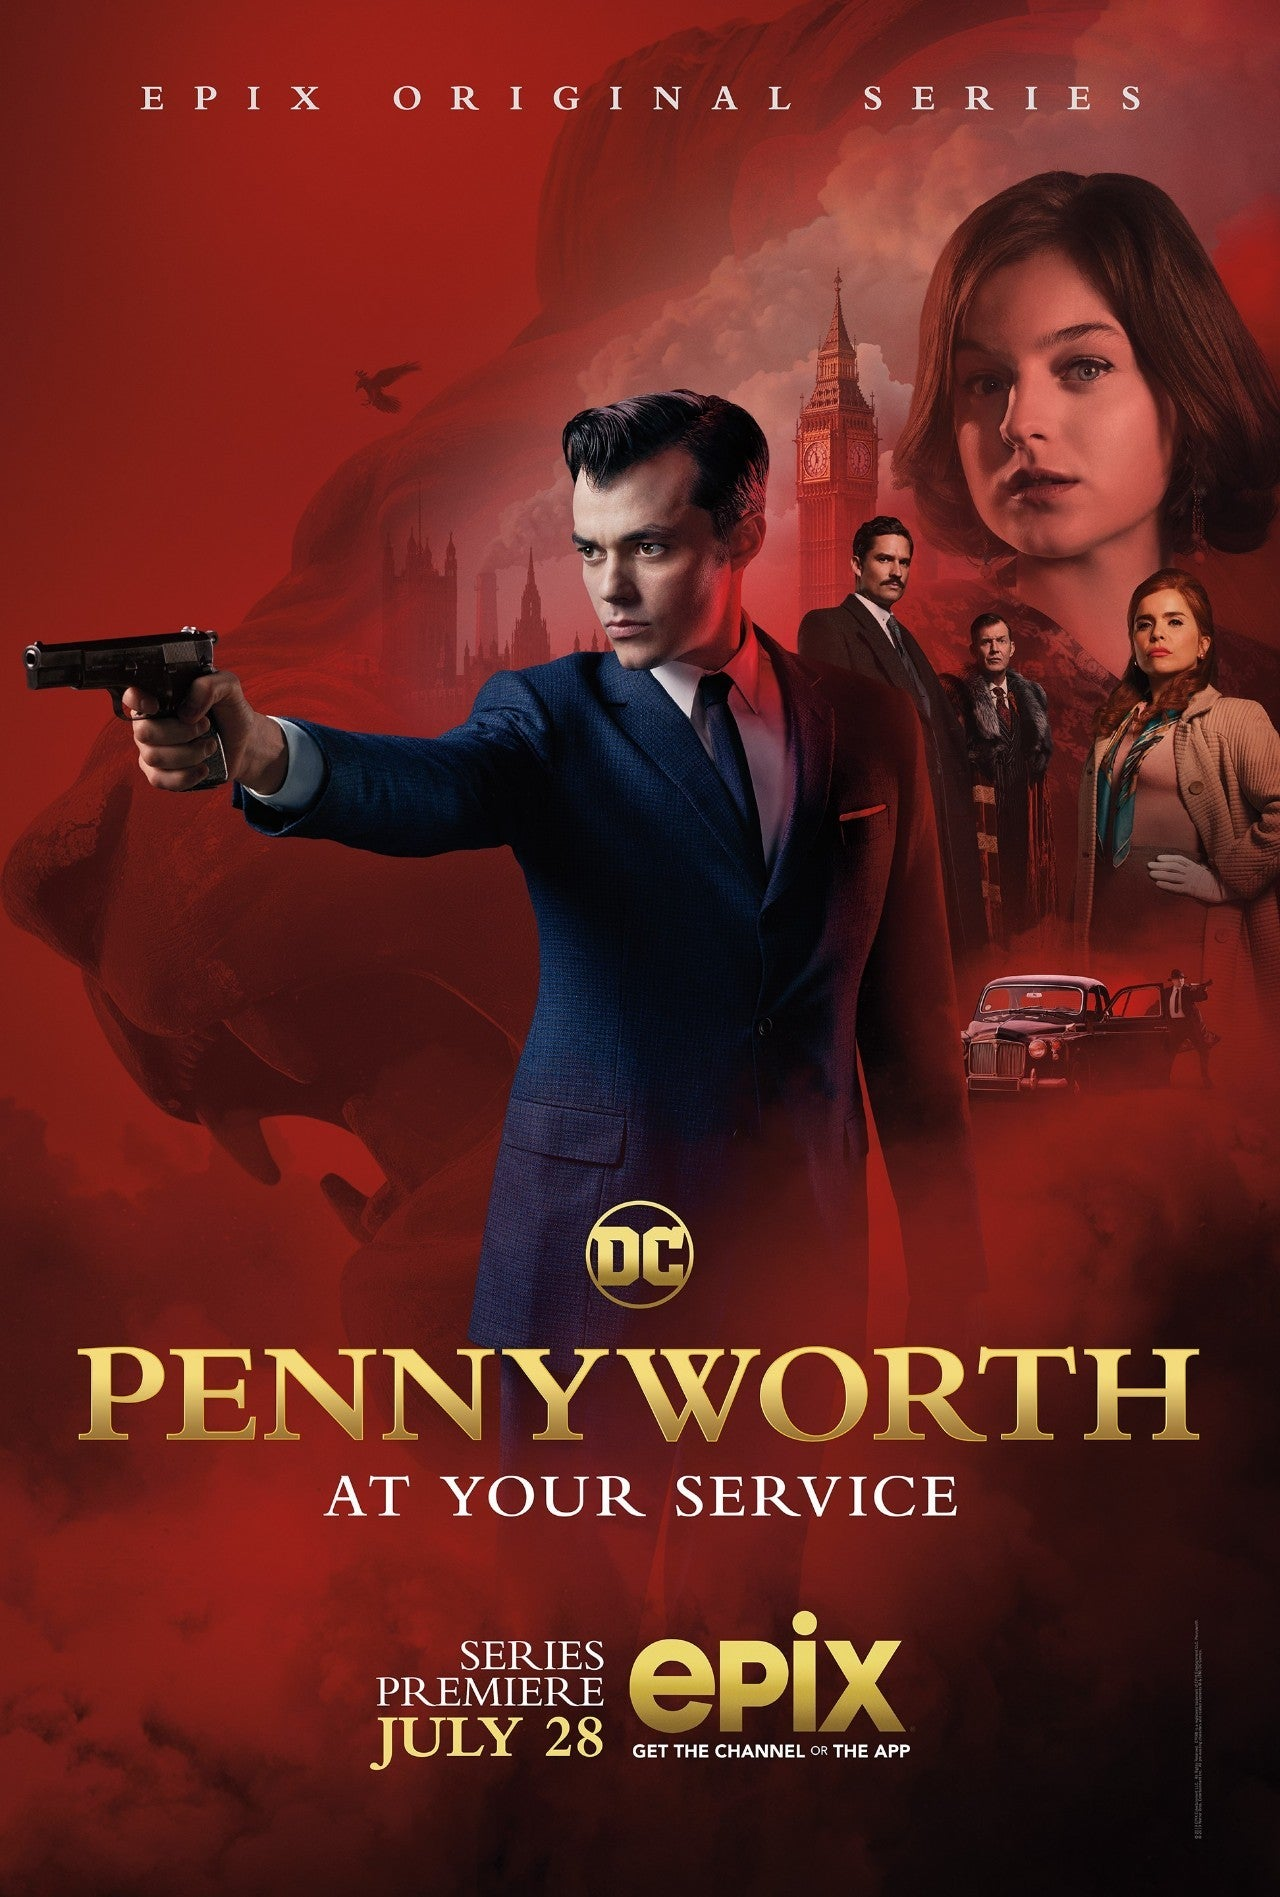 pennyworth-art-1174811.jpeg